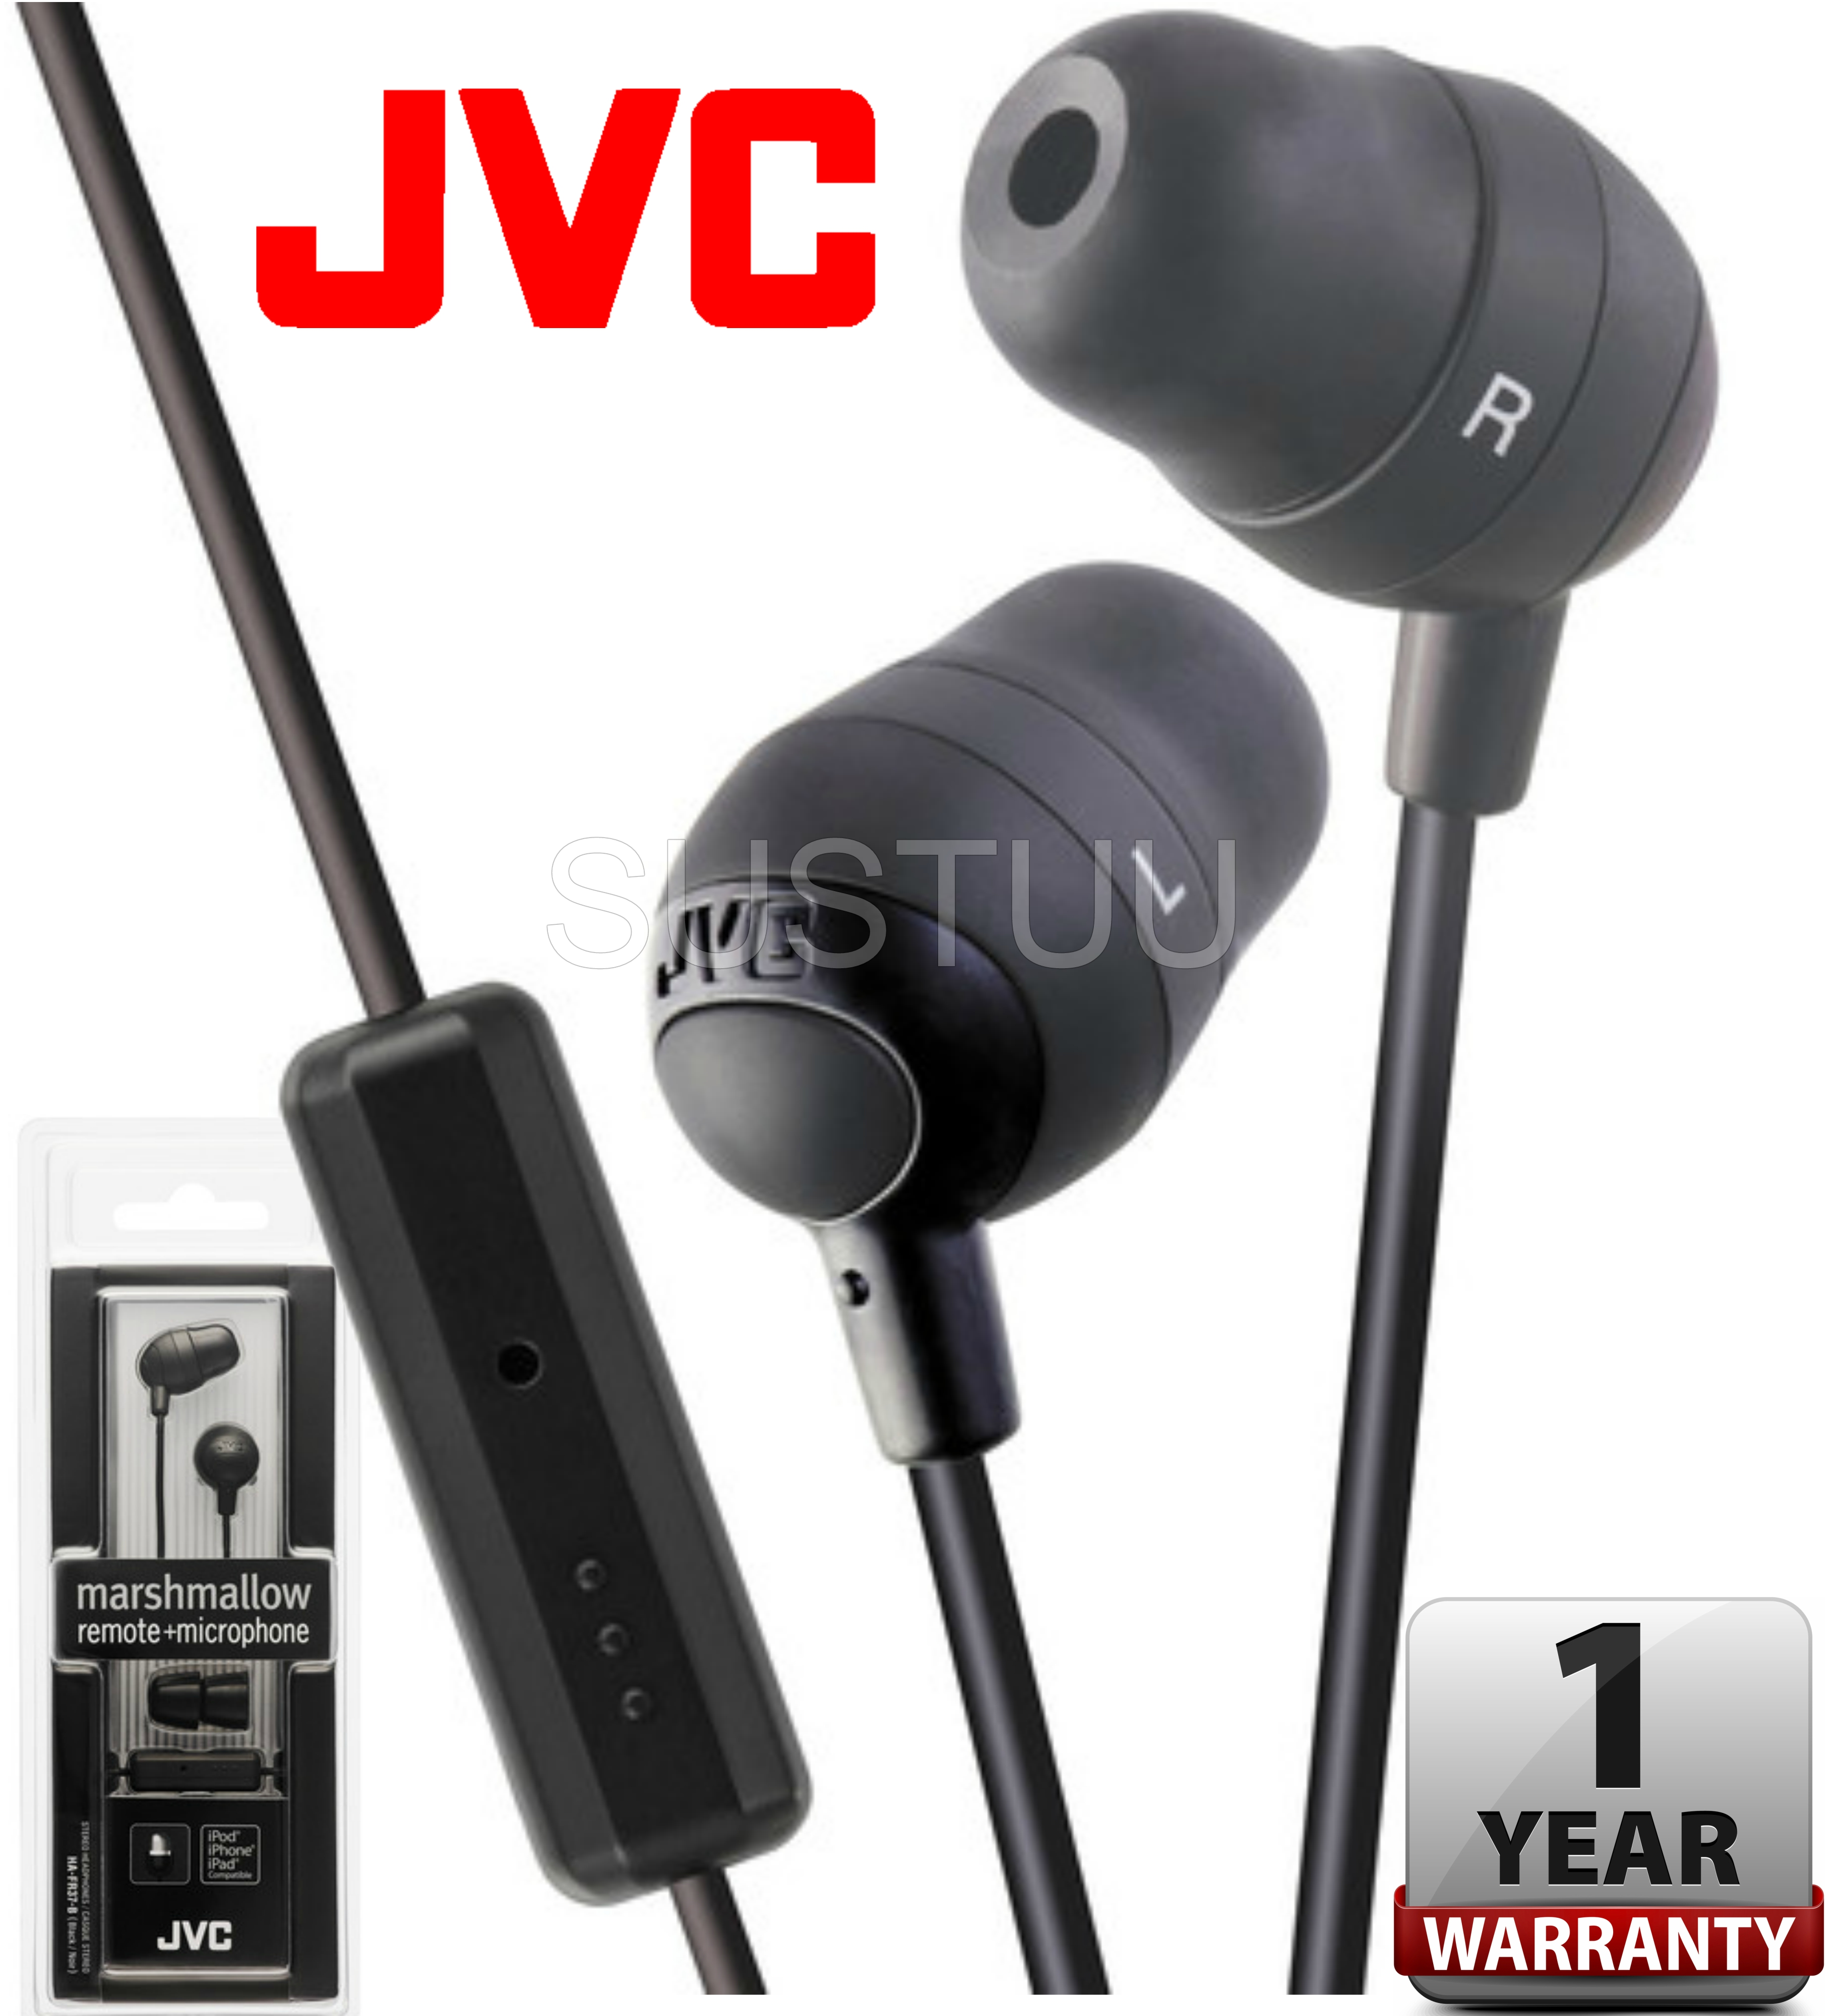 JVC Marshmallow In Ear Earphones Remote + Microphone for iPhone/iPod/iPad BLACK